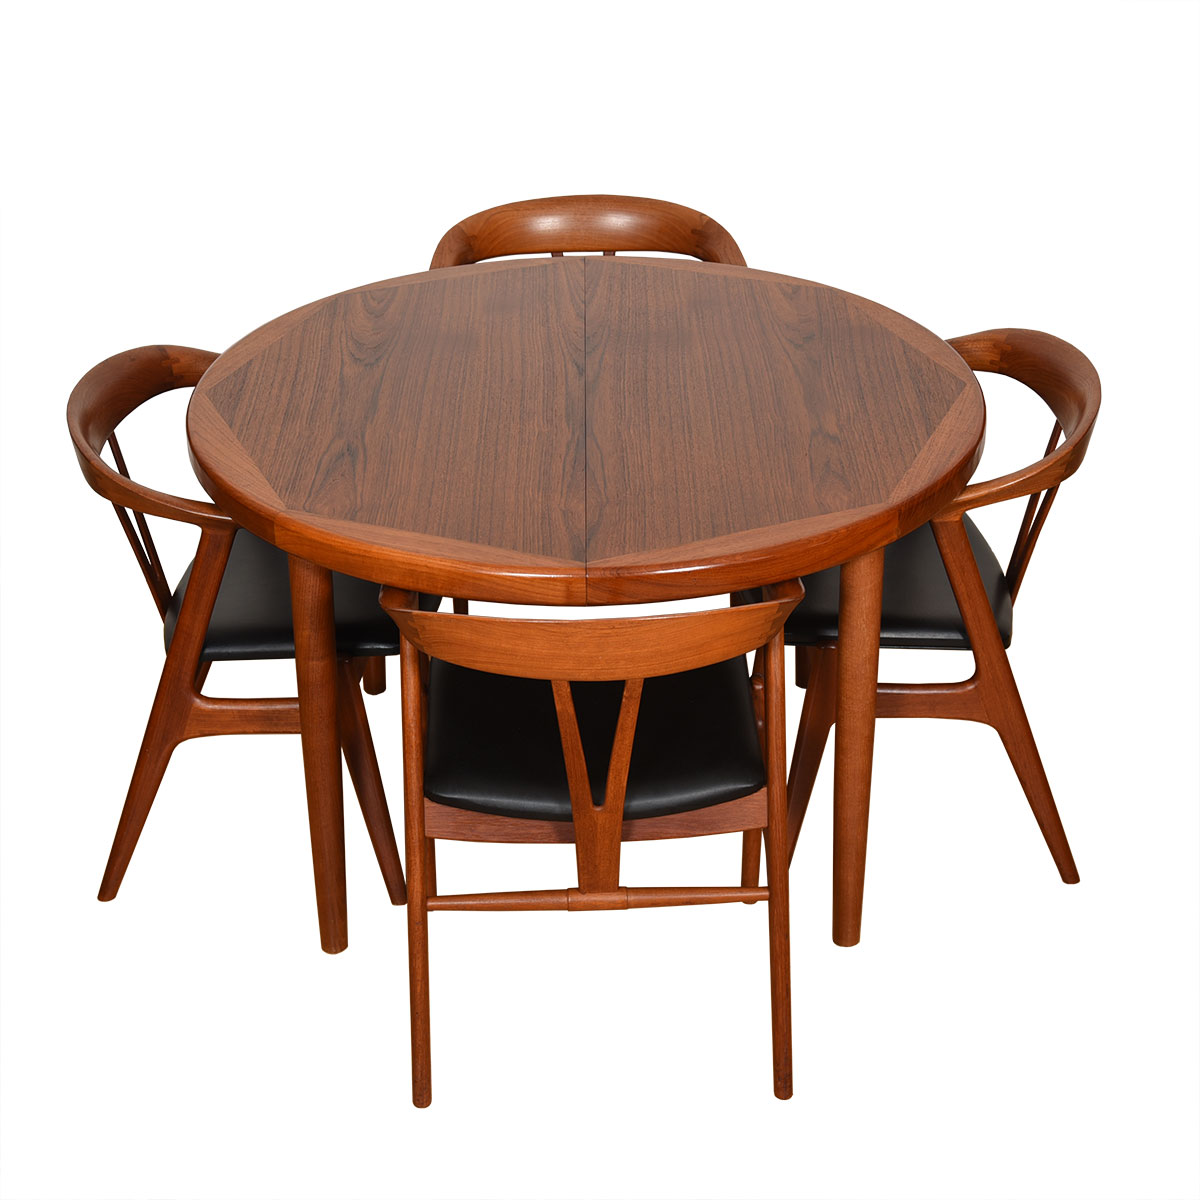 Round-to-Oval Danish Teak Dining Table w/ 2 Leaves